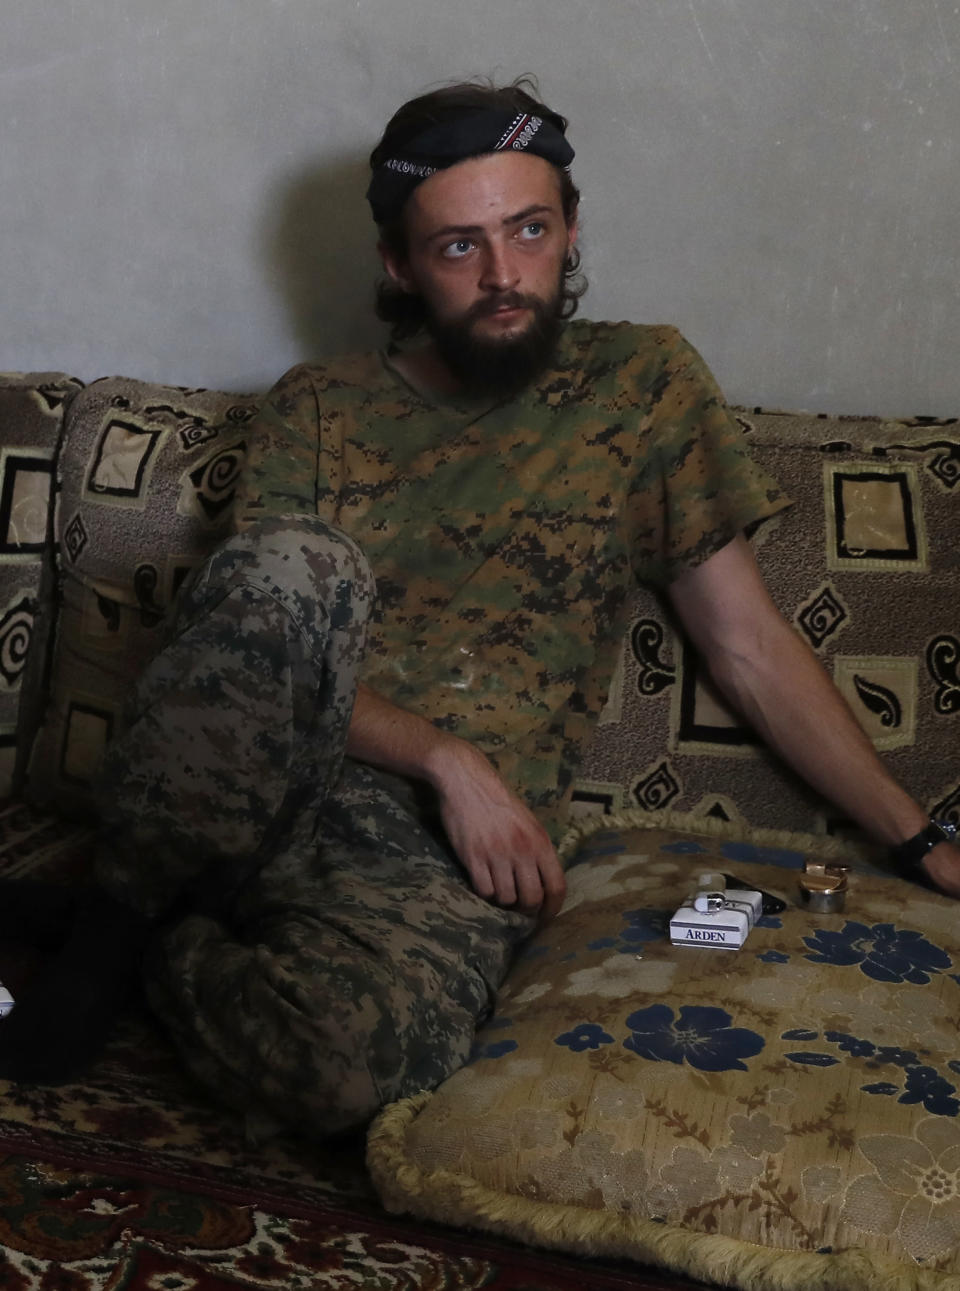 Jac Holmes had no previous military experience but went to fight against Isis in Syria aged 21. He died in October 2017 in the recently liberated city of Raqqa (AP Photo/Hussein Malla)